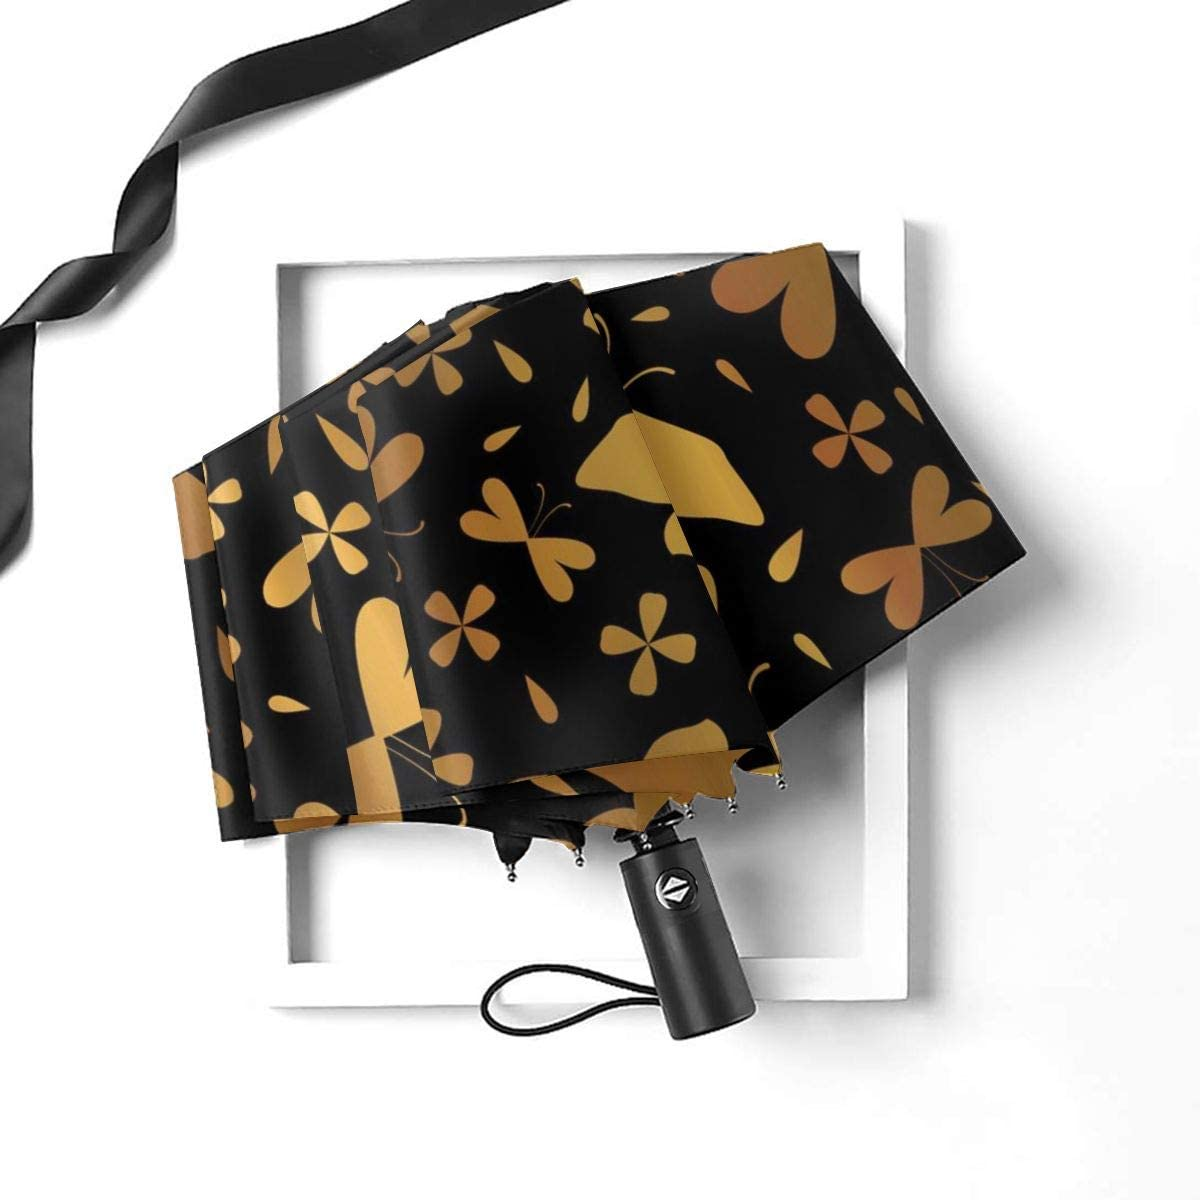 Luxe Copper Gold On Black Butterflies Compact Travel Umbrella Windproof Reinforced Canopy 8 Ribs Umbrella Auto Open And Close Button Personalized